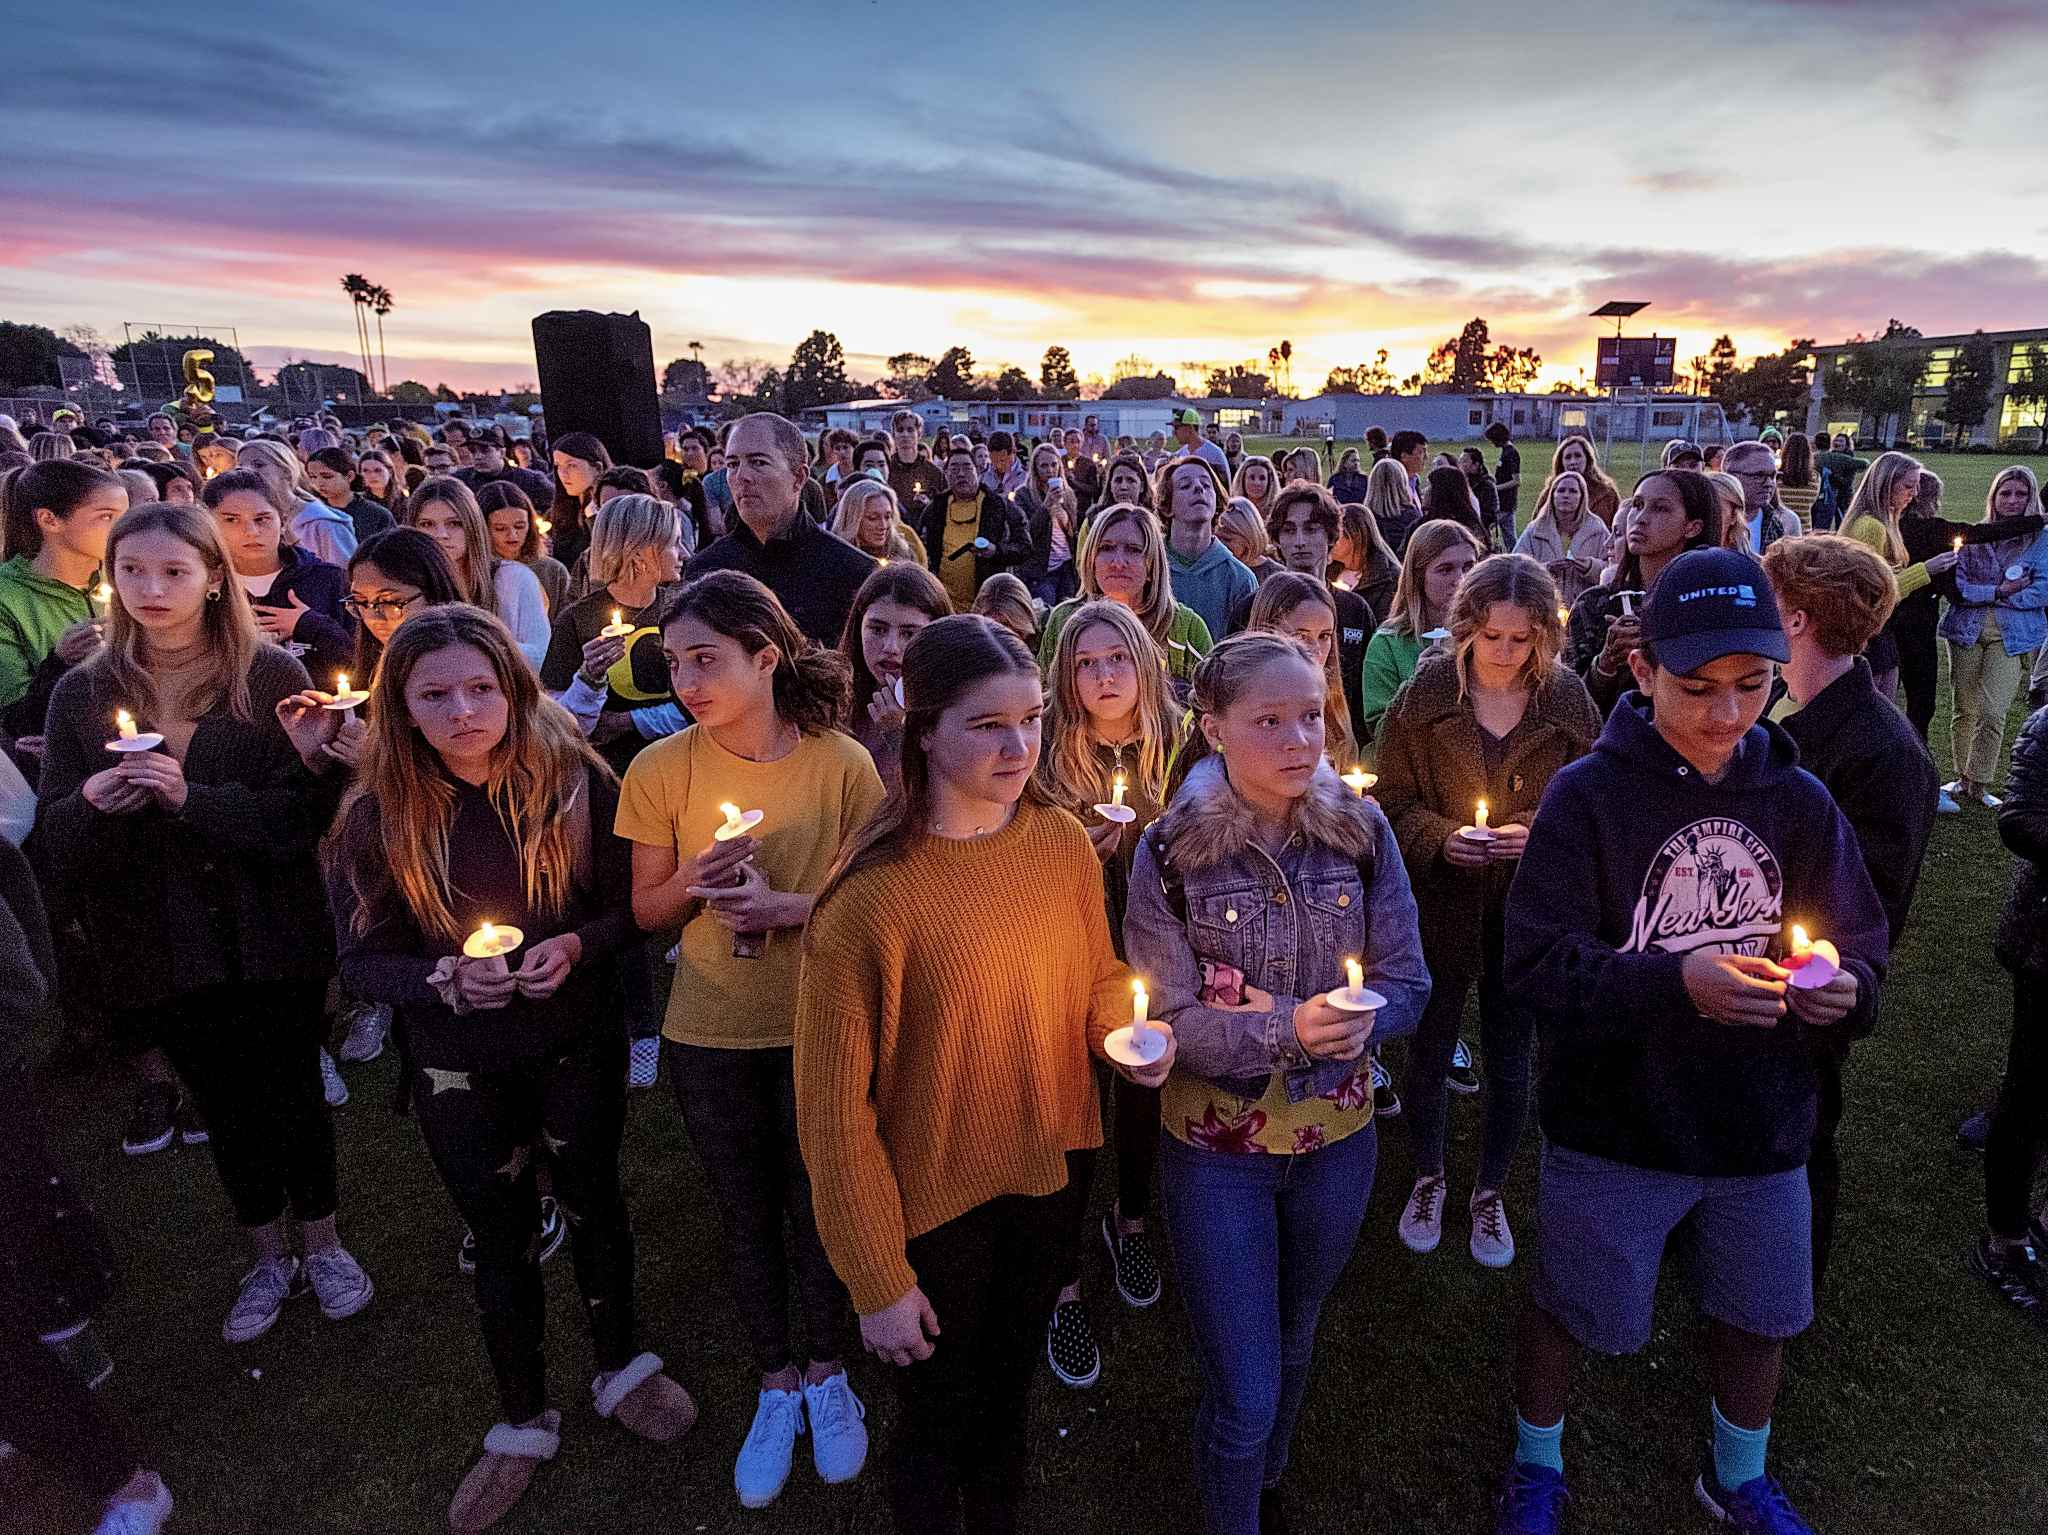 People gather for a candlelight vigil for Alyssa Altobelli and her parents in Newport Beach, Calif. on Thursday. Alyssa and her parents, John and Keri Altobelli, were among the nine who died in Sunday's helicopter crash in Calabasas. (Leonard Ortiz / The Orange County Register)